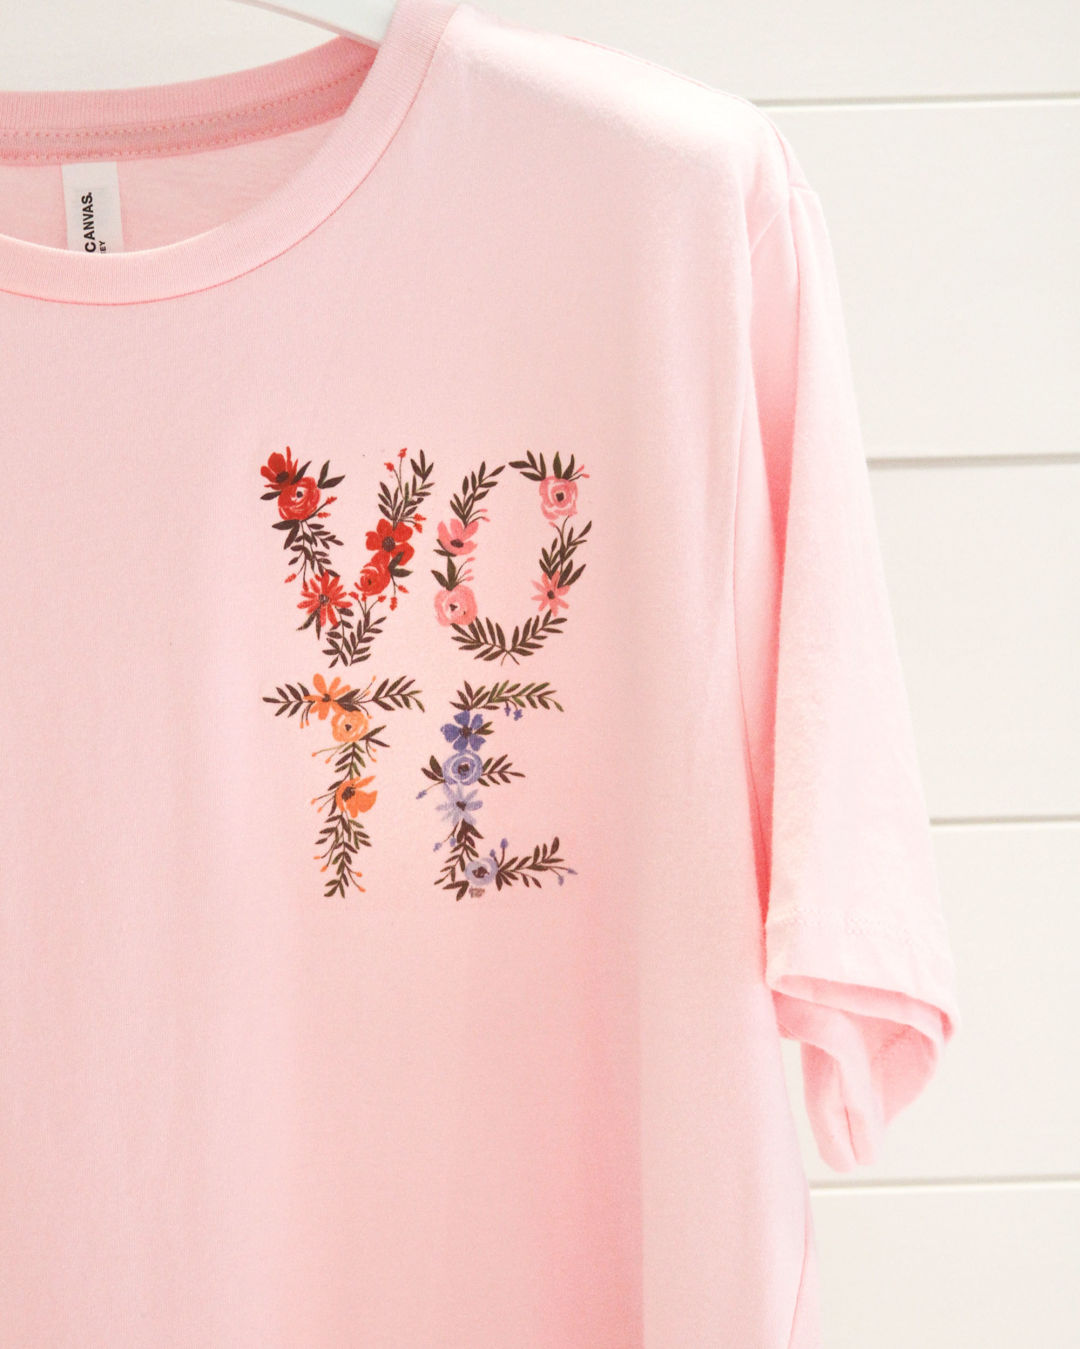 The Camilyn Beth x Shannon Kirsten Vote t-shirt features Kirsten's floral illustration on a light pink tee.